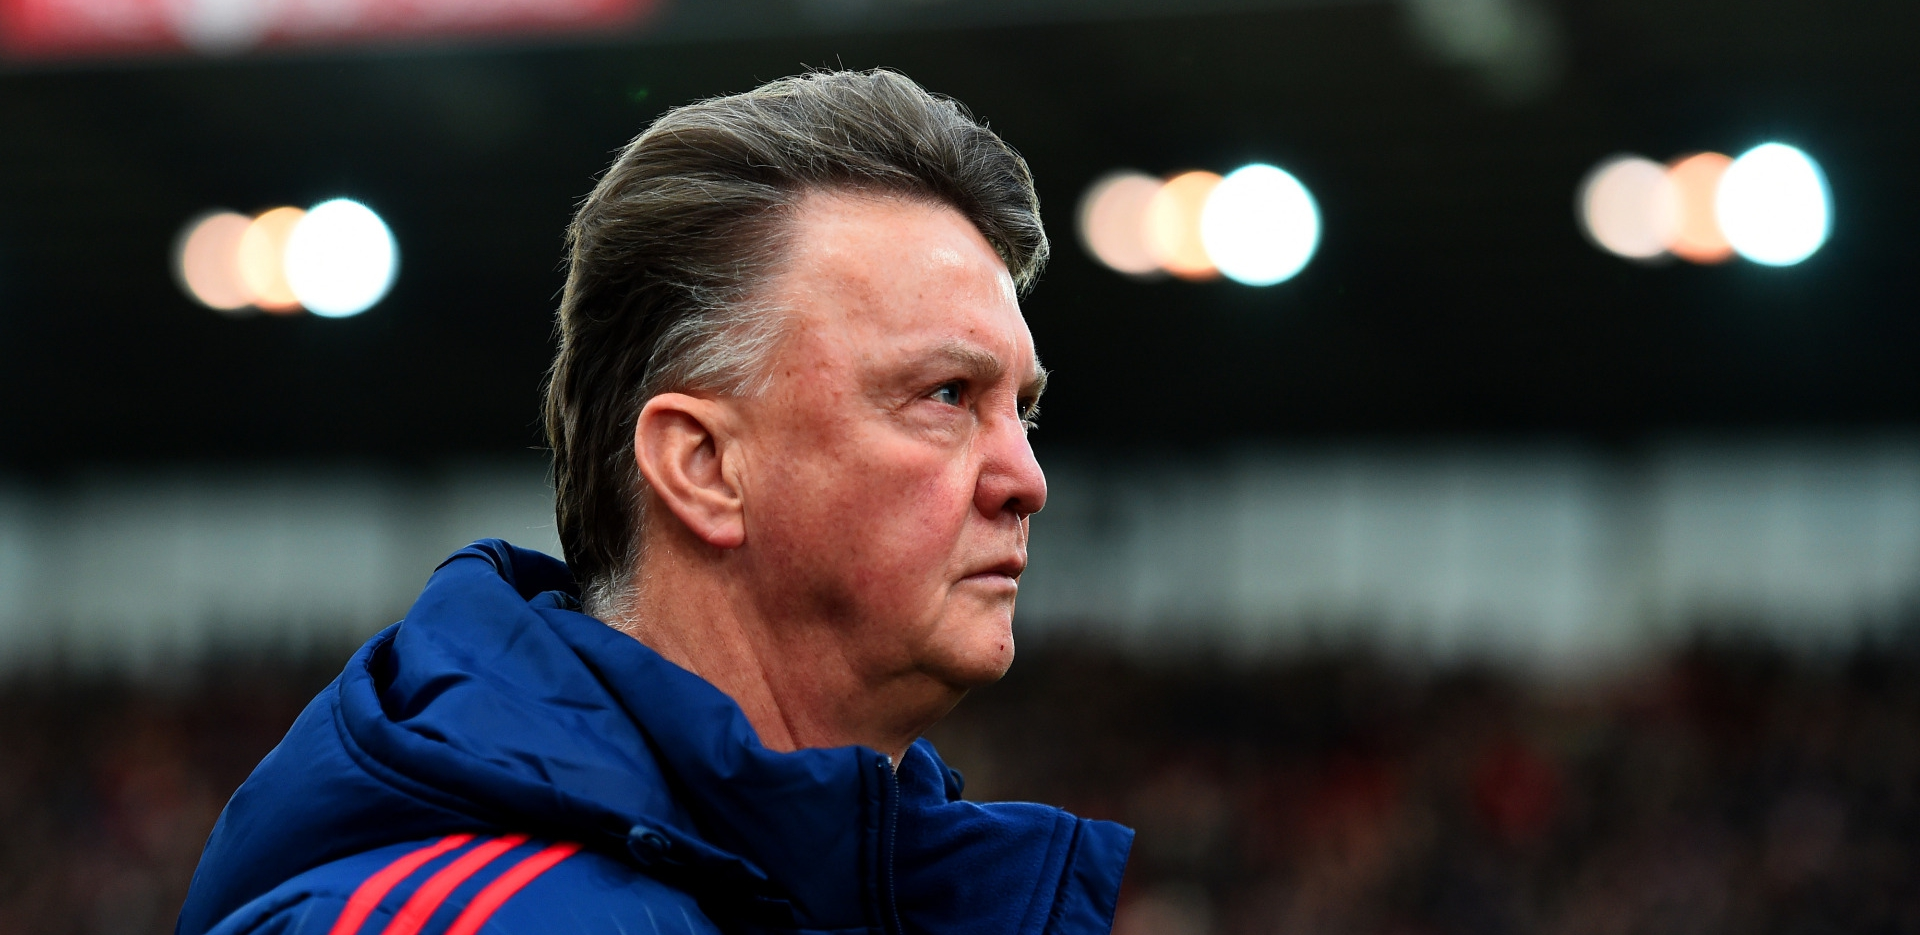 'Van Gaal is one of the worst coaches I've worked with' - Rafael says ex-Man Utd boss didn't give him a chance